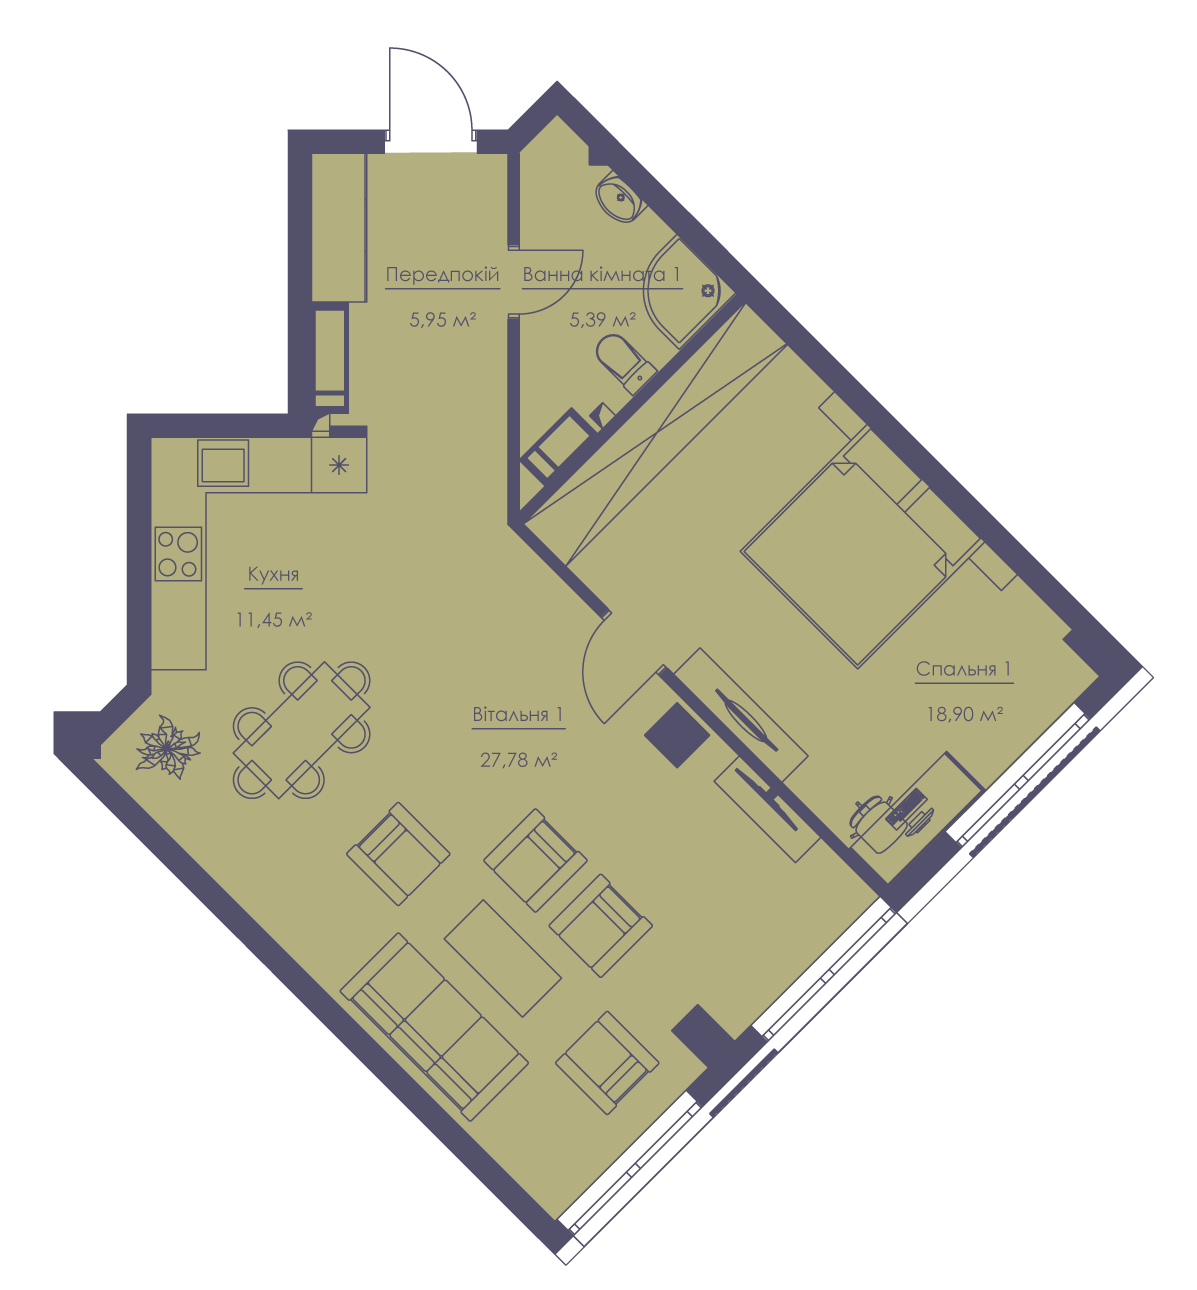 Apartment layout KV_33_2a_1_1_1-1